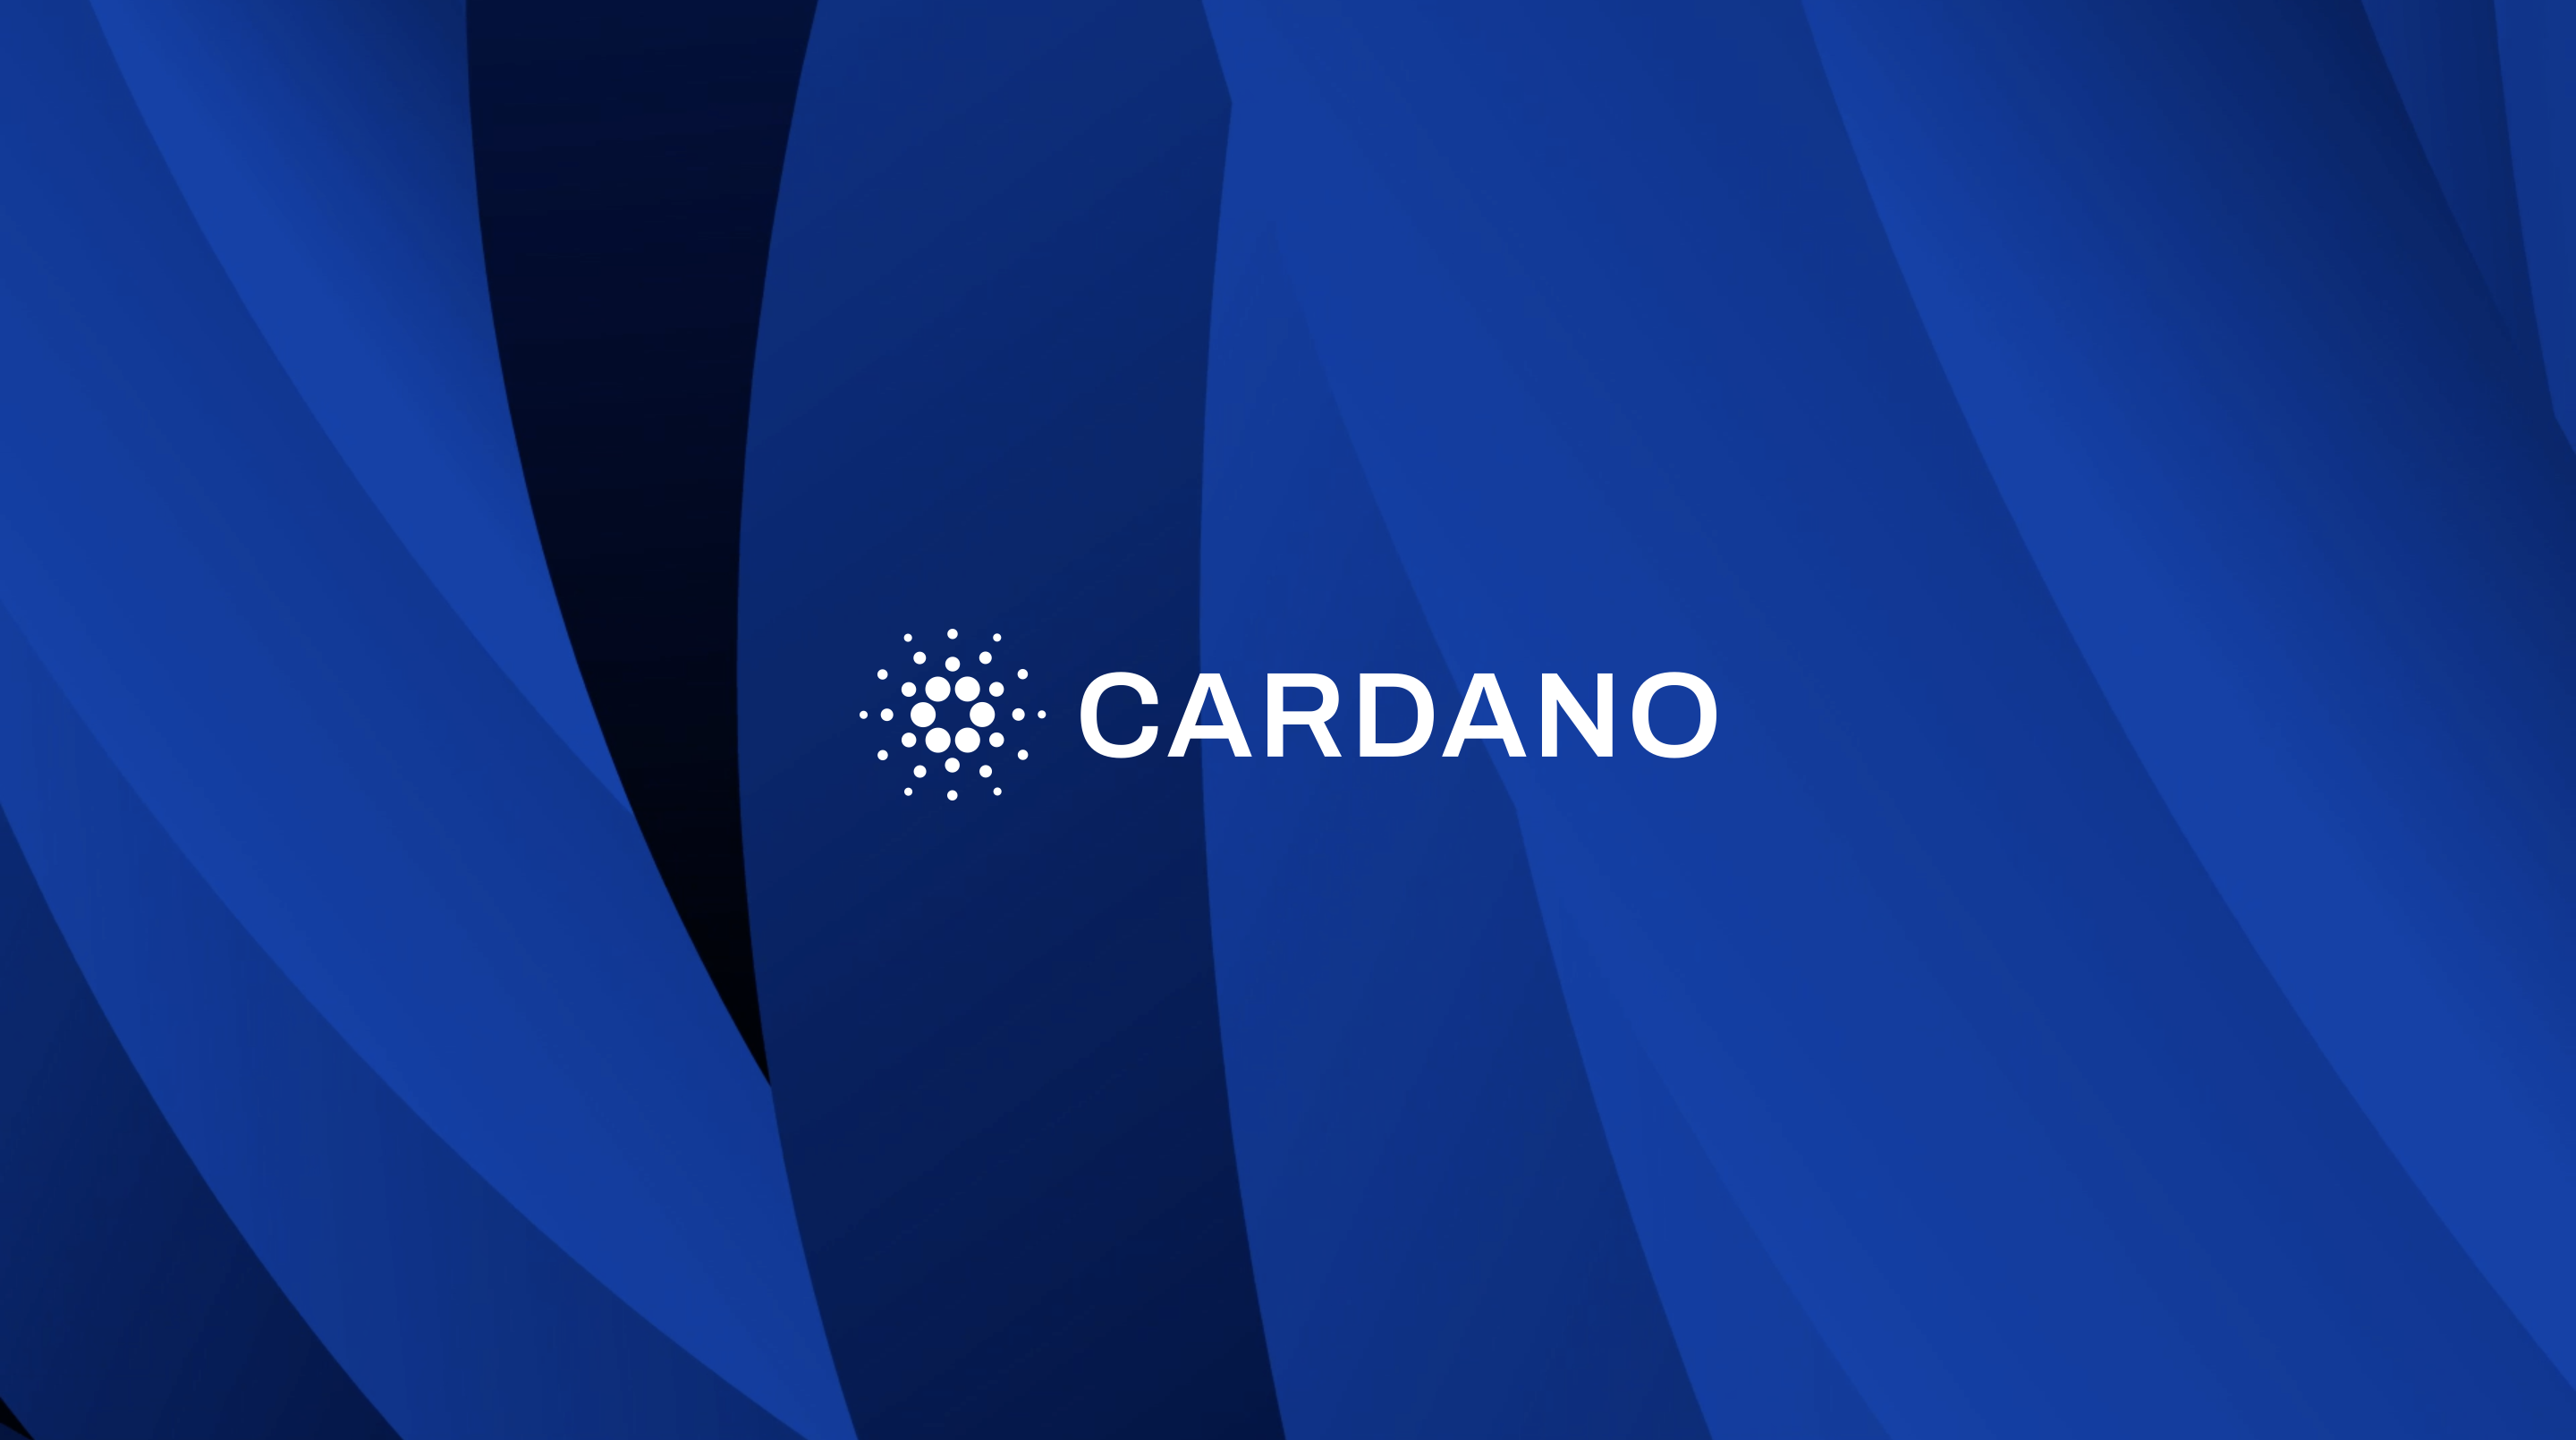 Cover image: Cardano